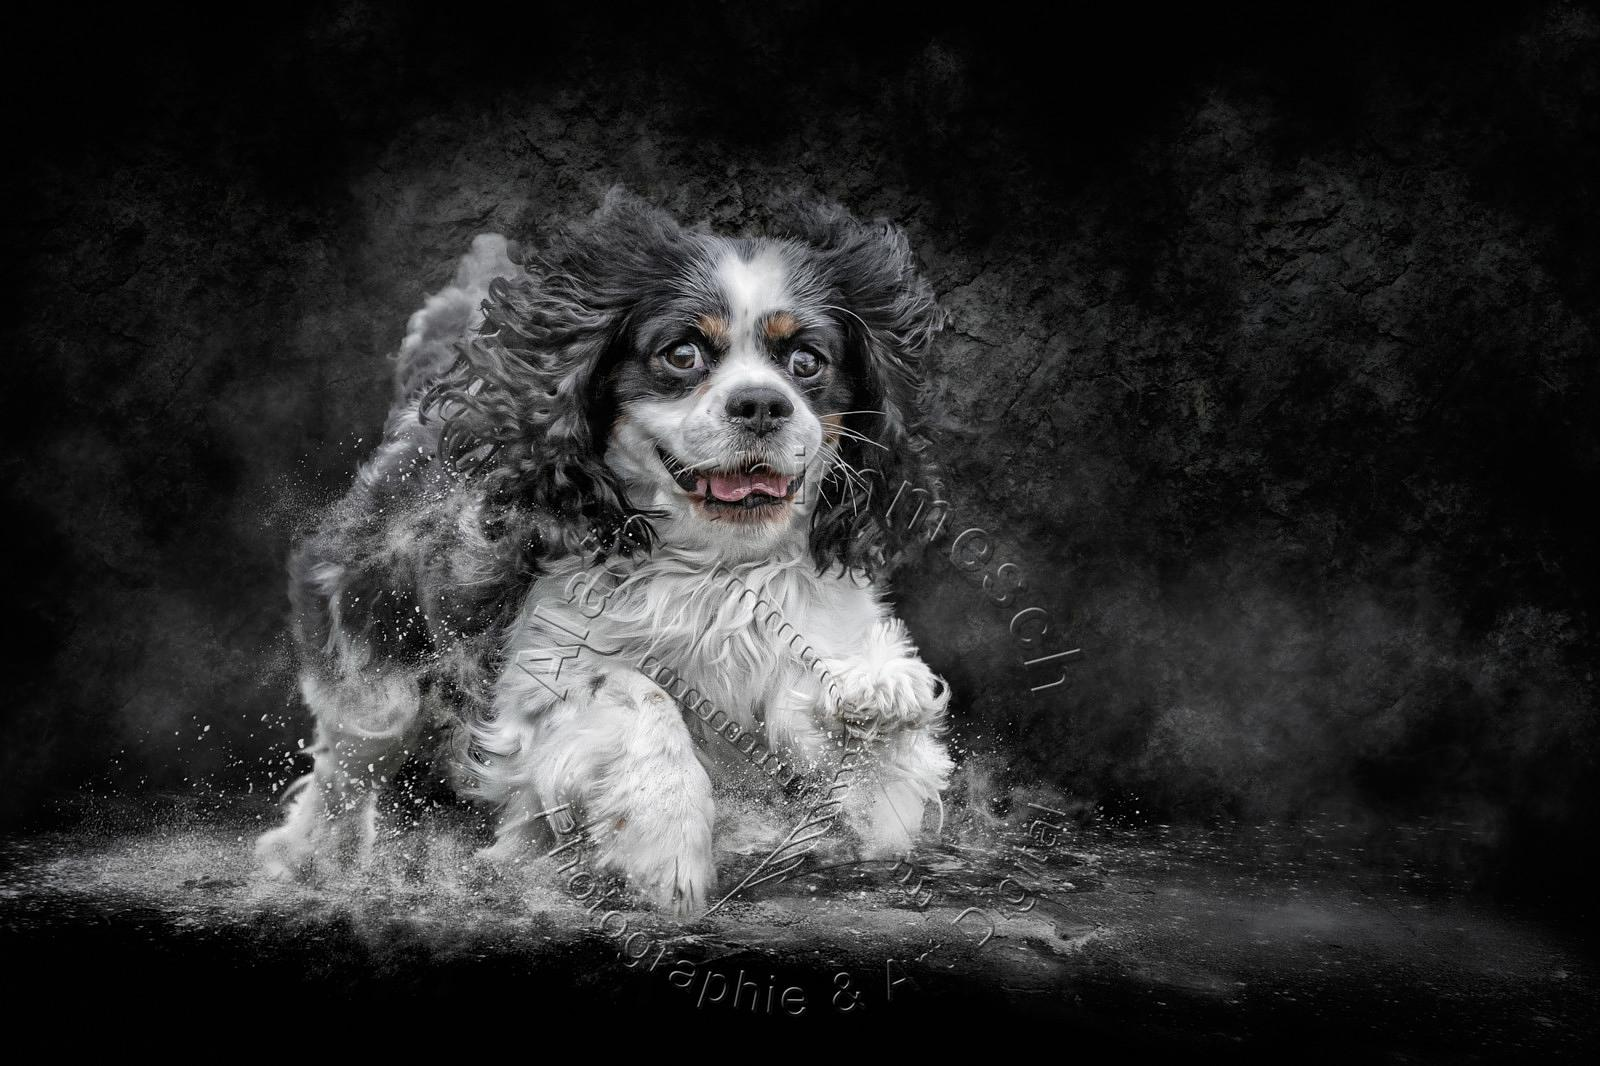 2020-Art-Digital-Alain-Thimmesch-Chien-92